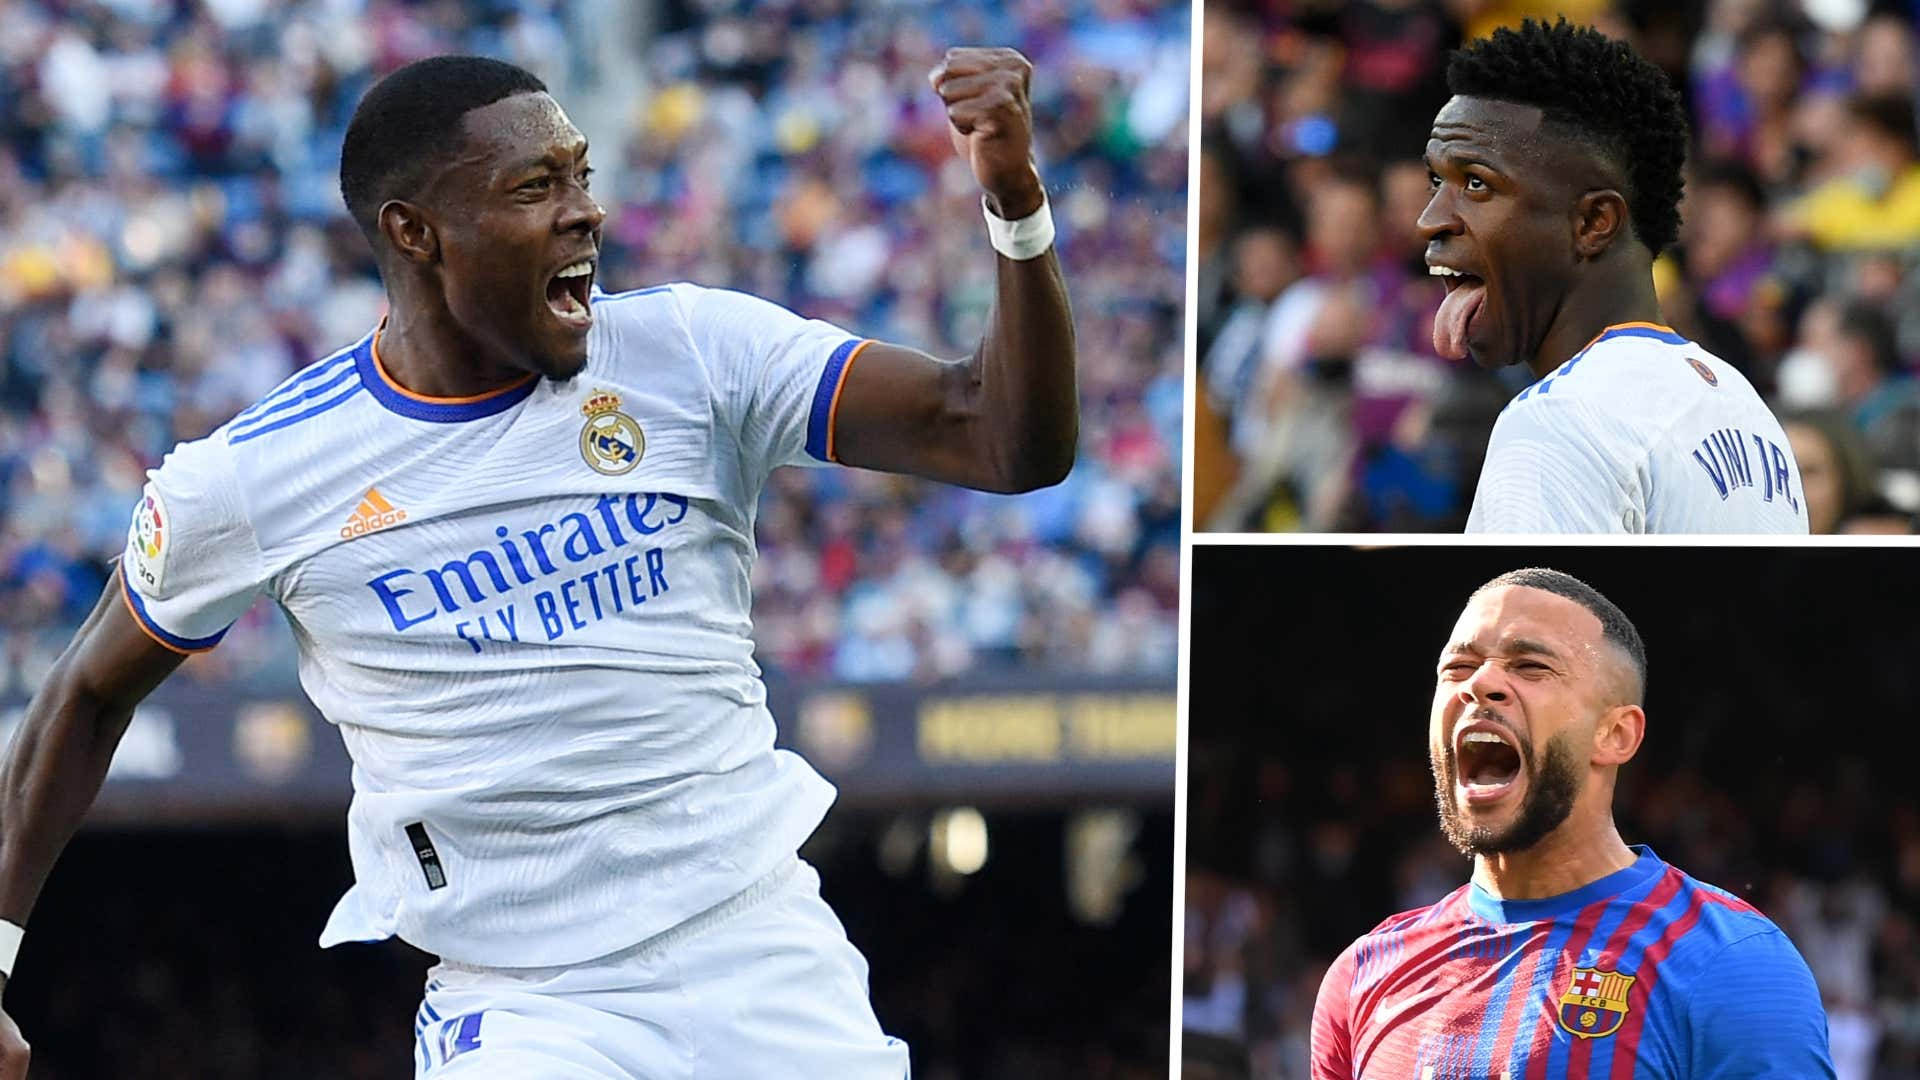 Real Madrid's new Ramos? Alaba steps up at both ends to decide El Clasico   Goal.com